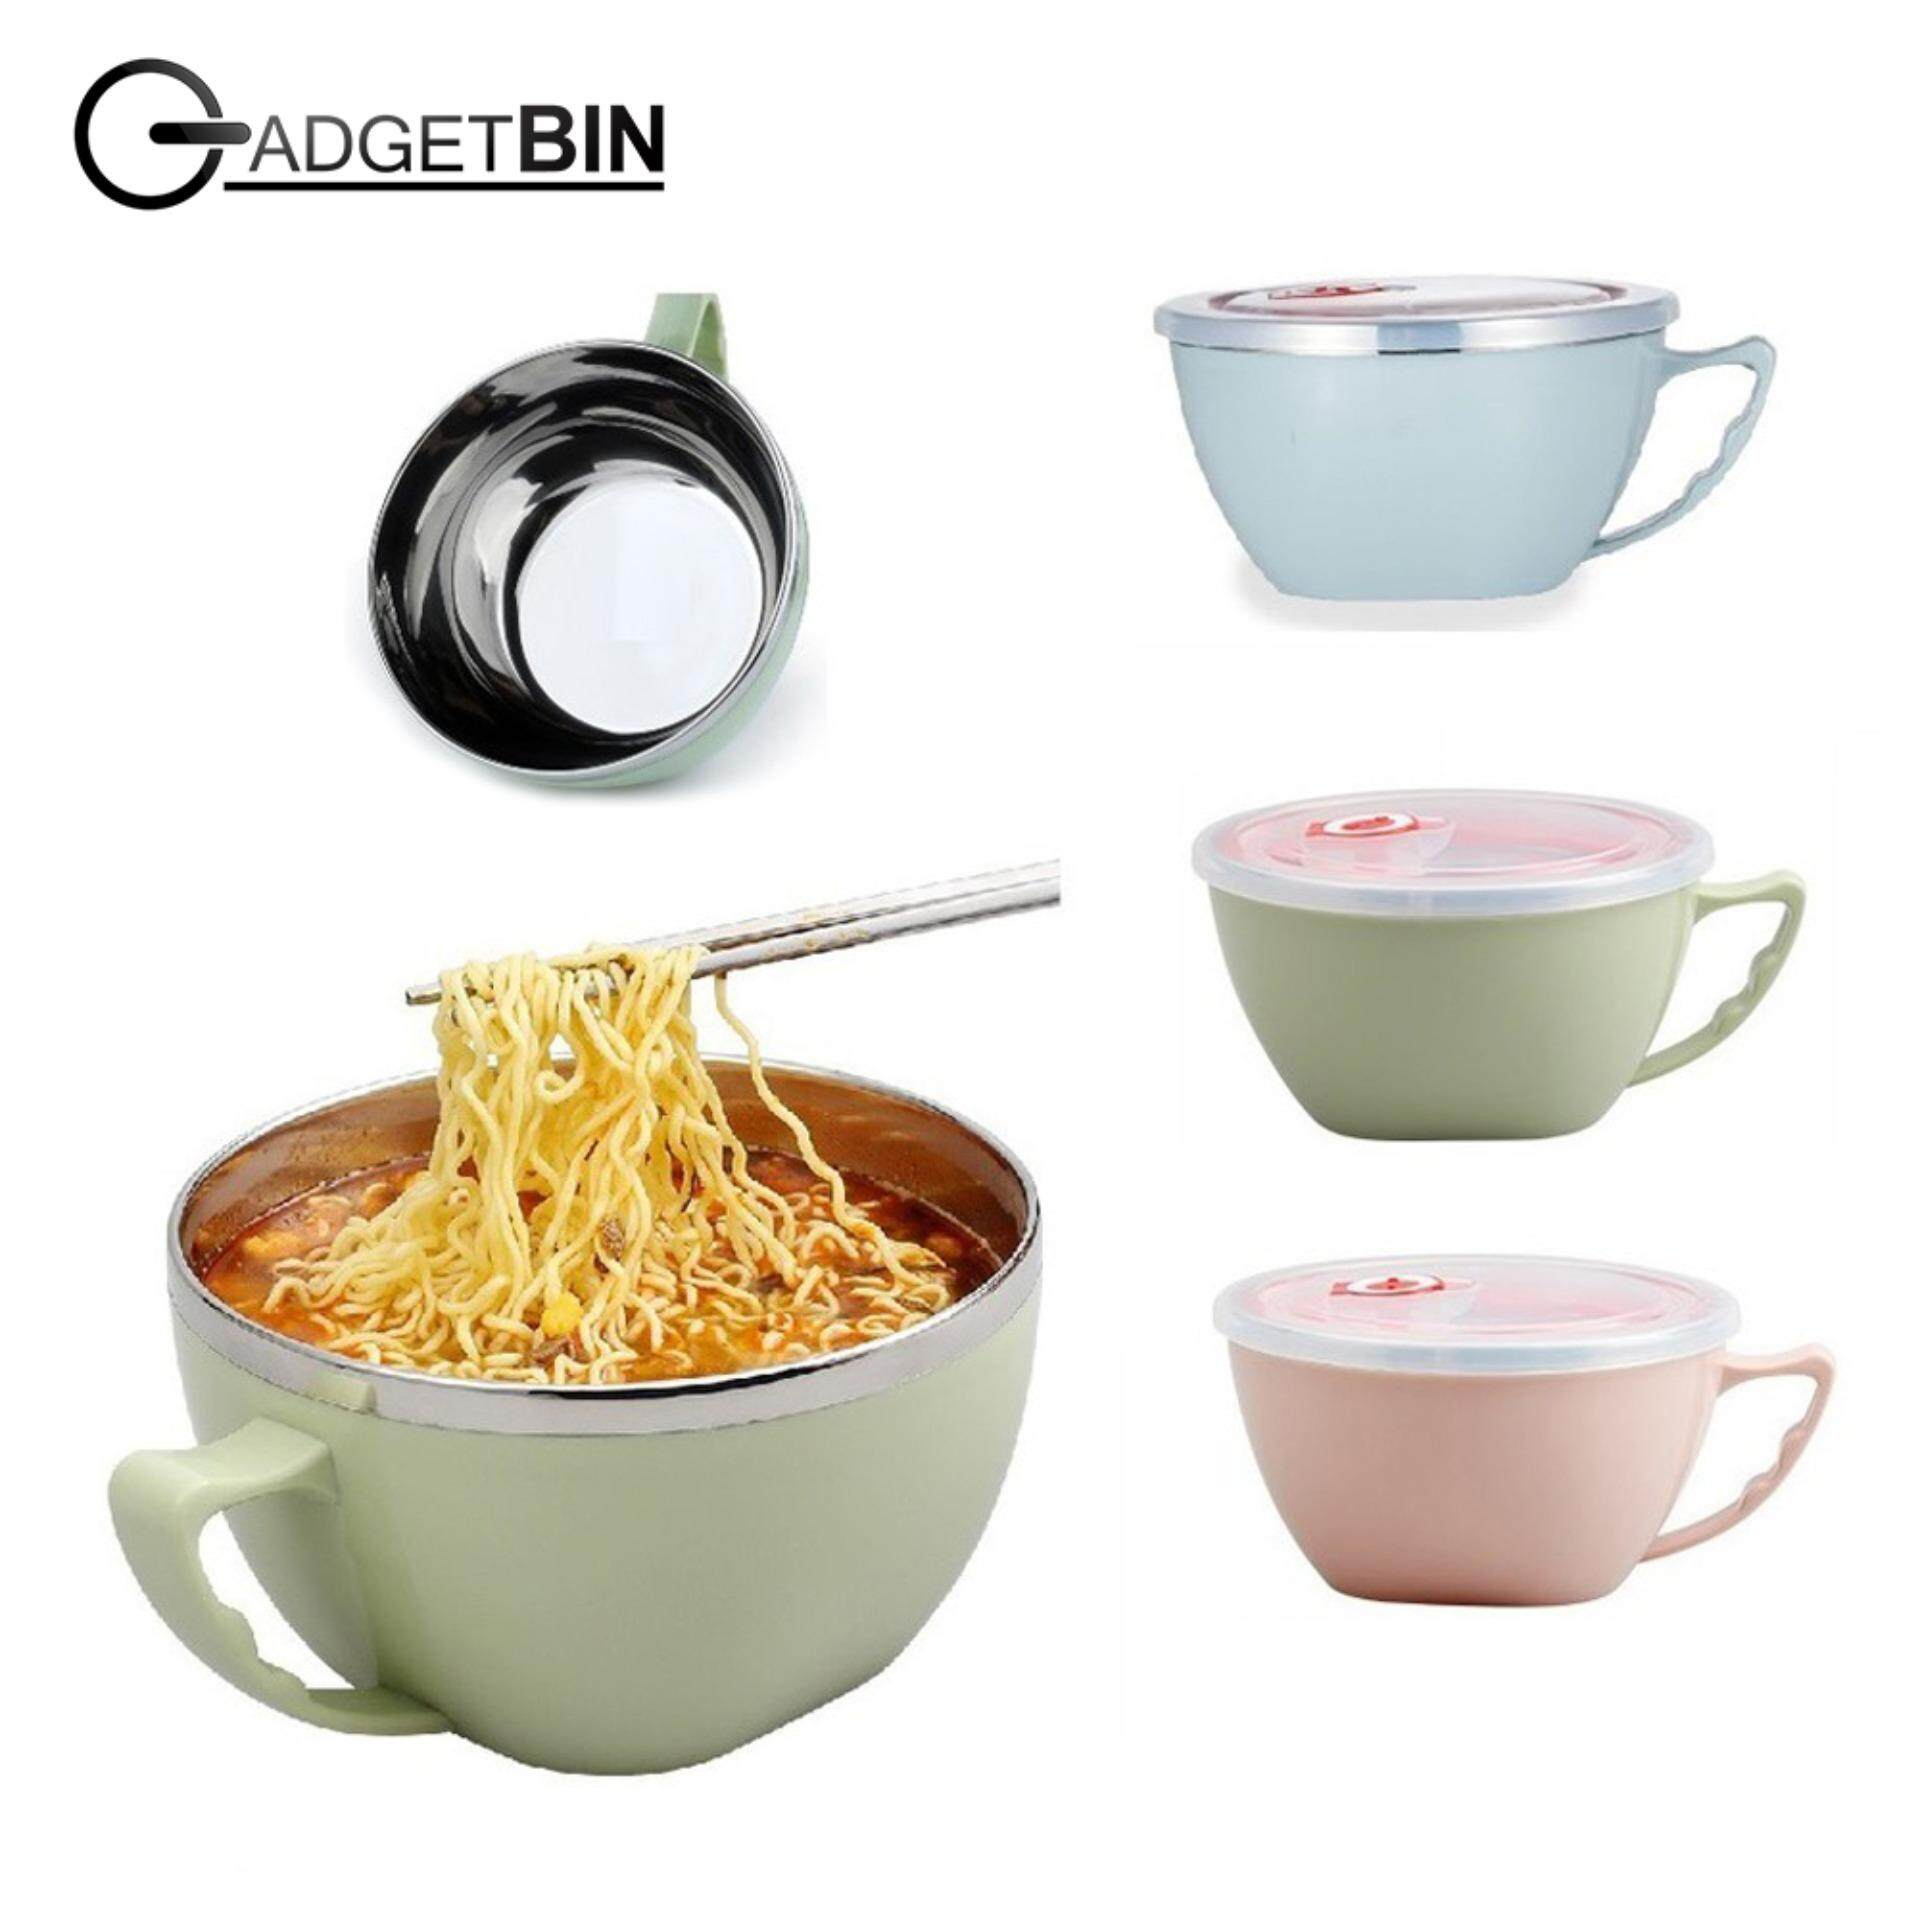 Korean Style Multipurpose Instant Noodle Stainless Steel Bowl With Seal 900ml By Gadgetbin.